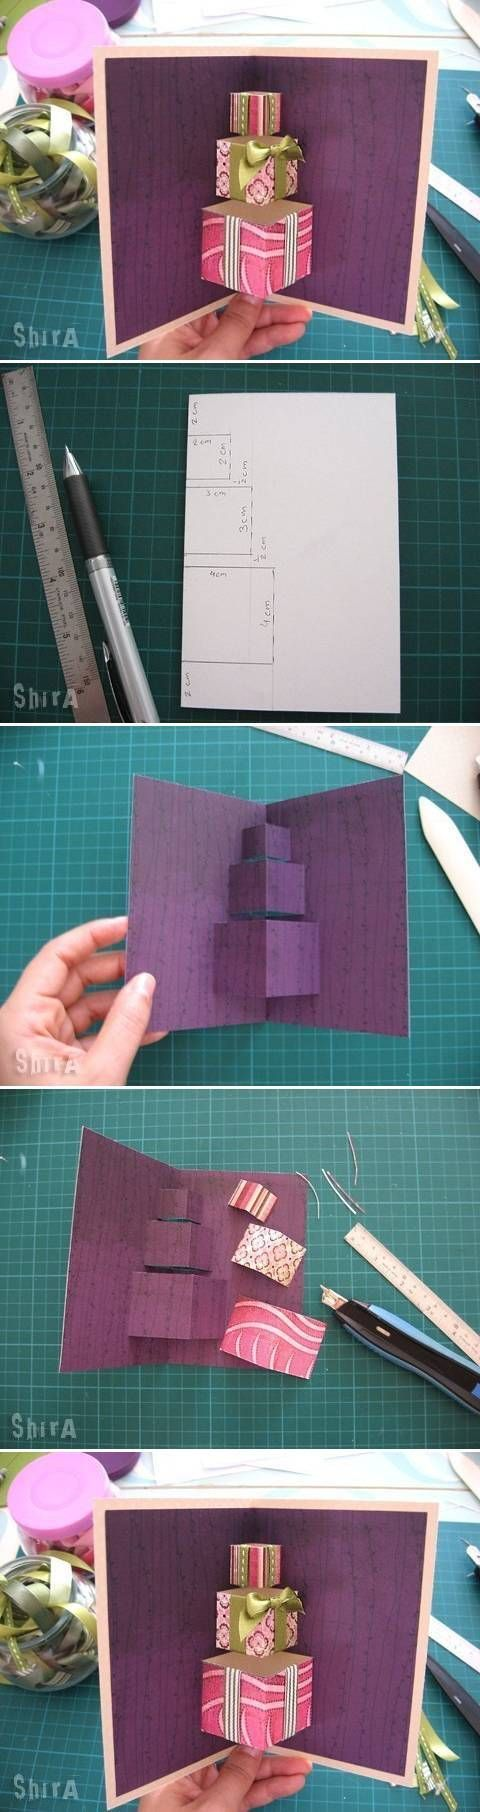 DIY Simple 3D Gift Card DIY Projects | UsefulDIY.com Follow Us on Facebook ==> http://www.facebook.com/UsefulDiy